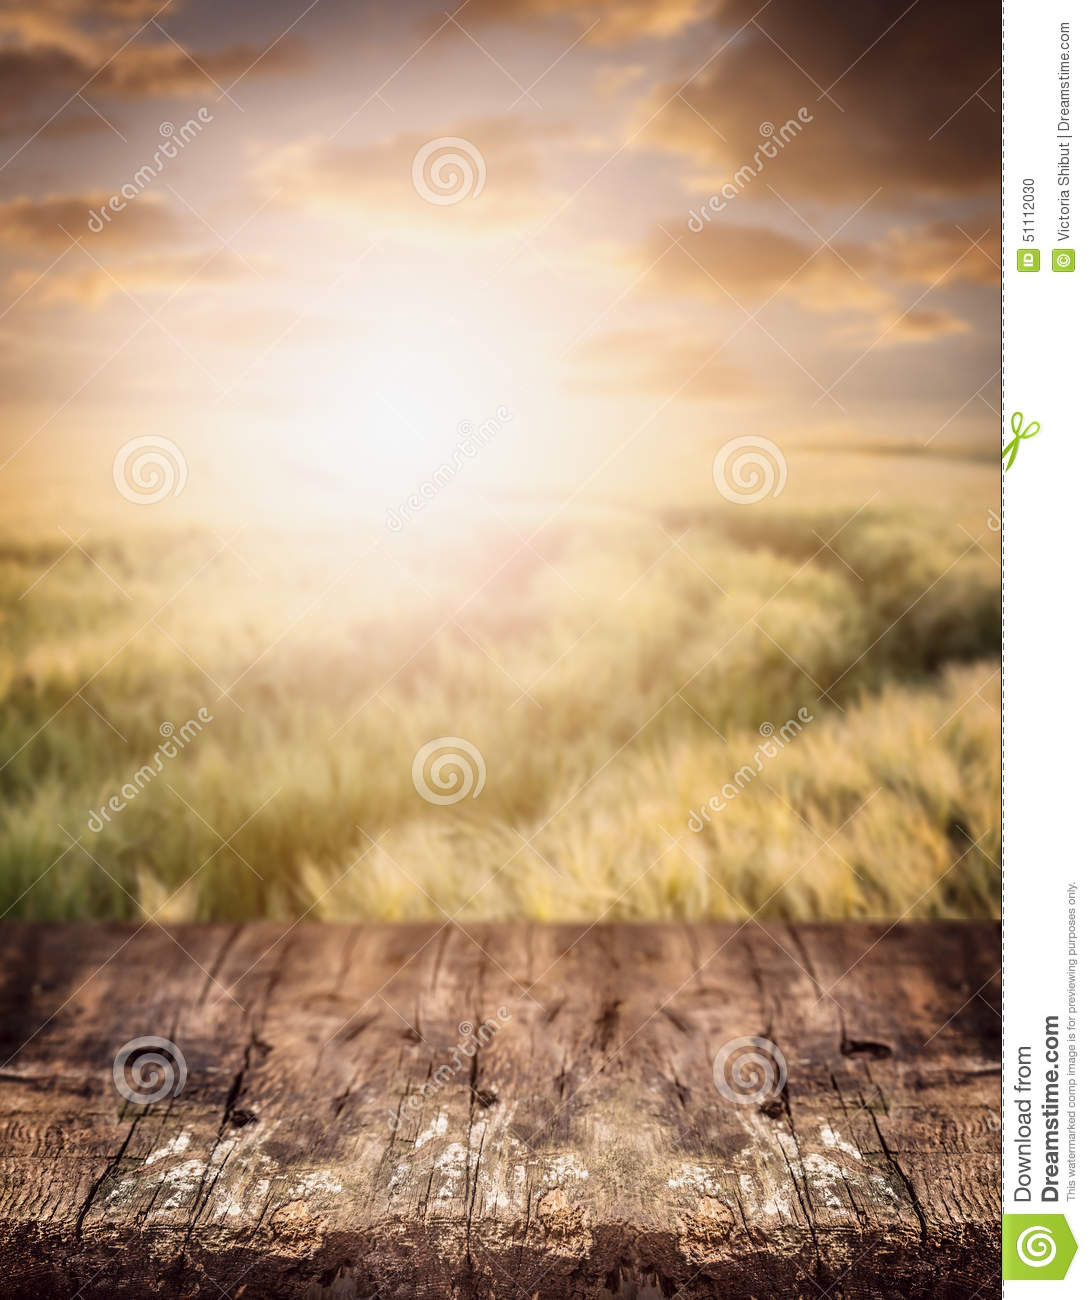 Rustic Wooden Table Over Wheat Field And Sunset Sky Nature